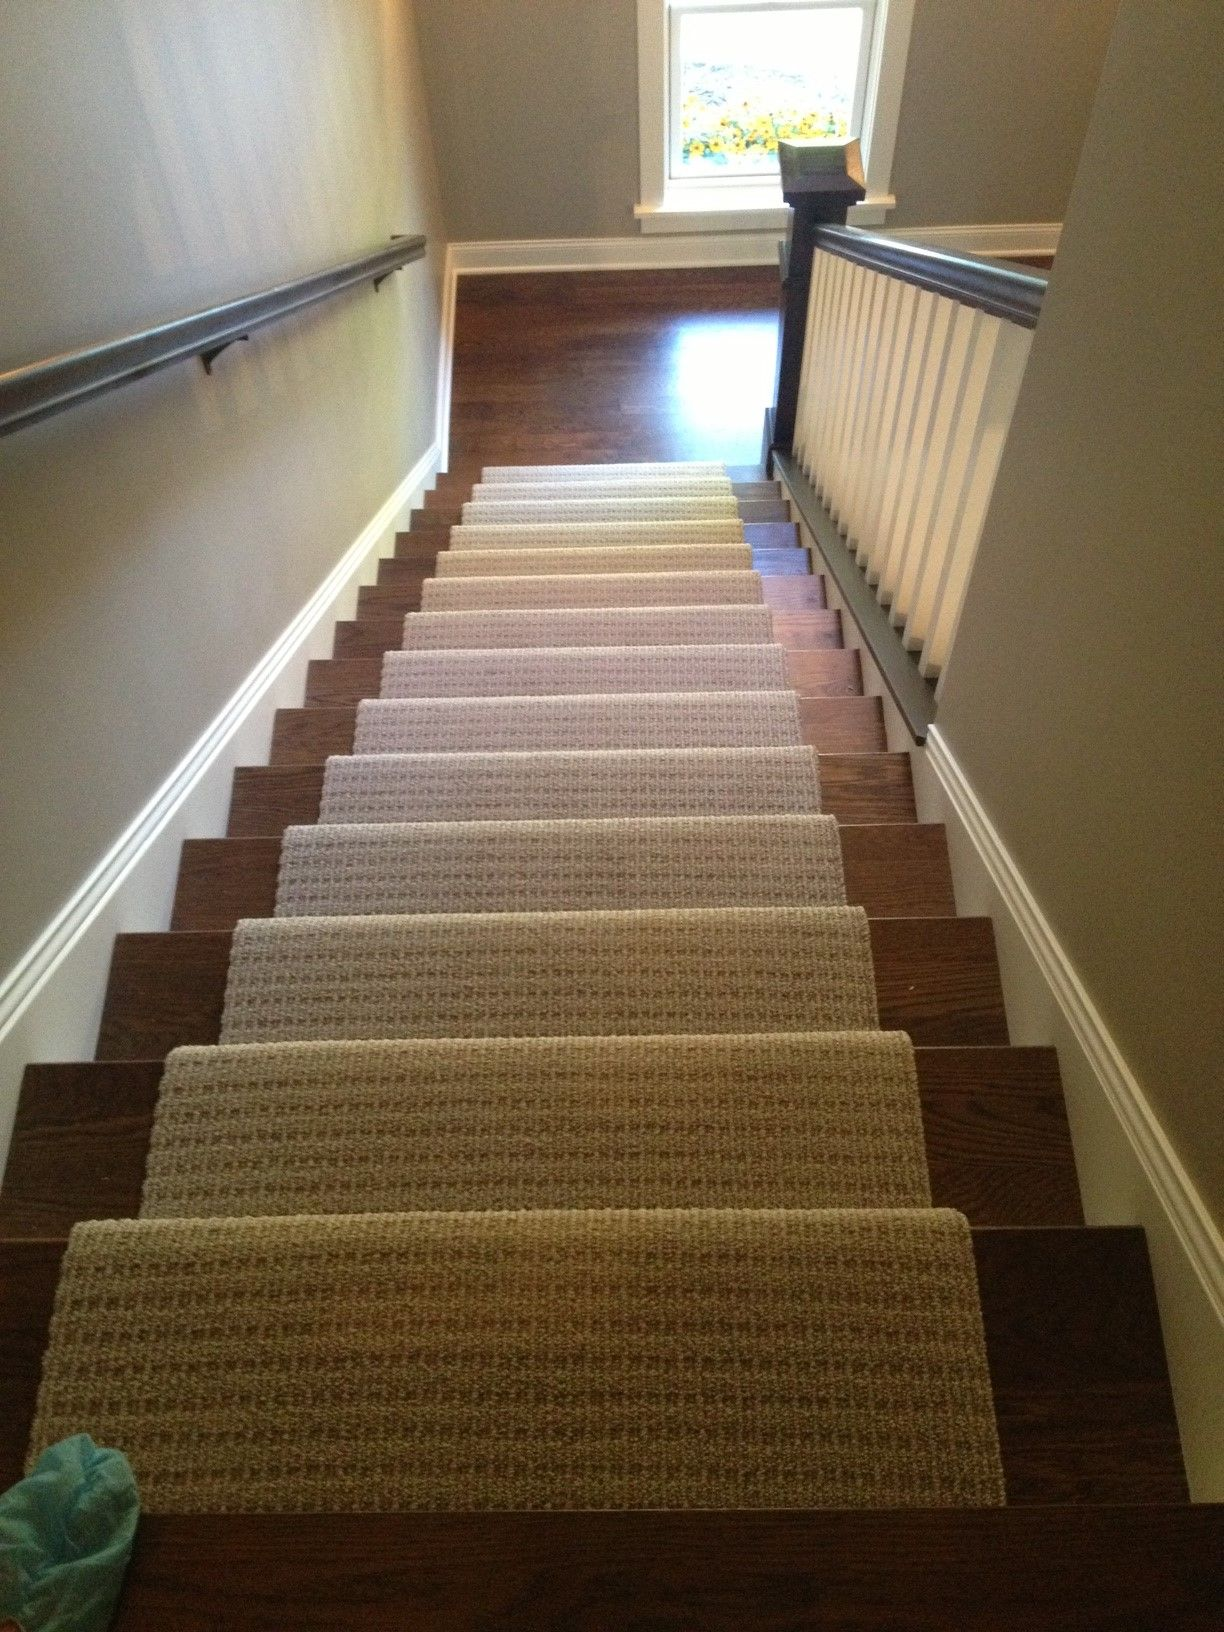 Wood And Carpet Runner Stairs For My Upstairs Living